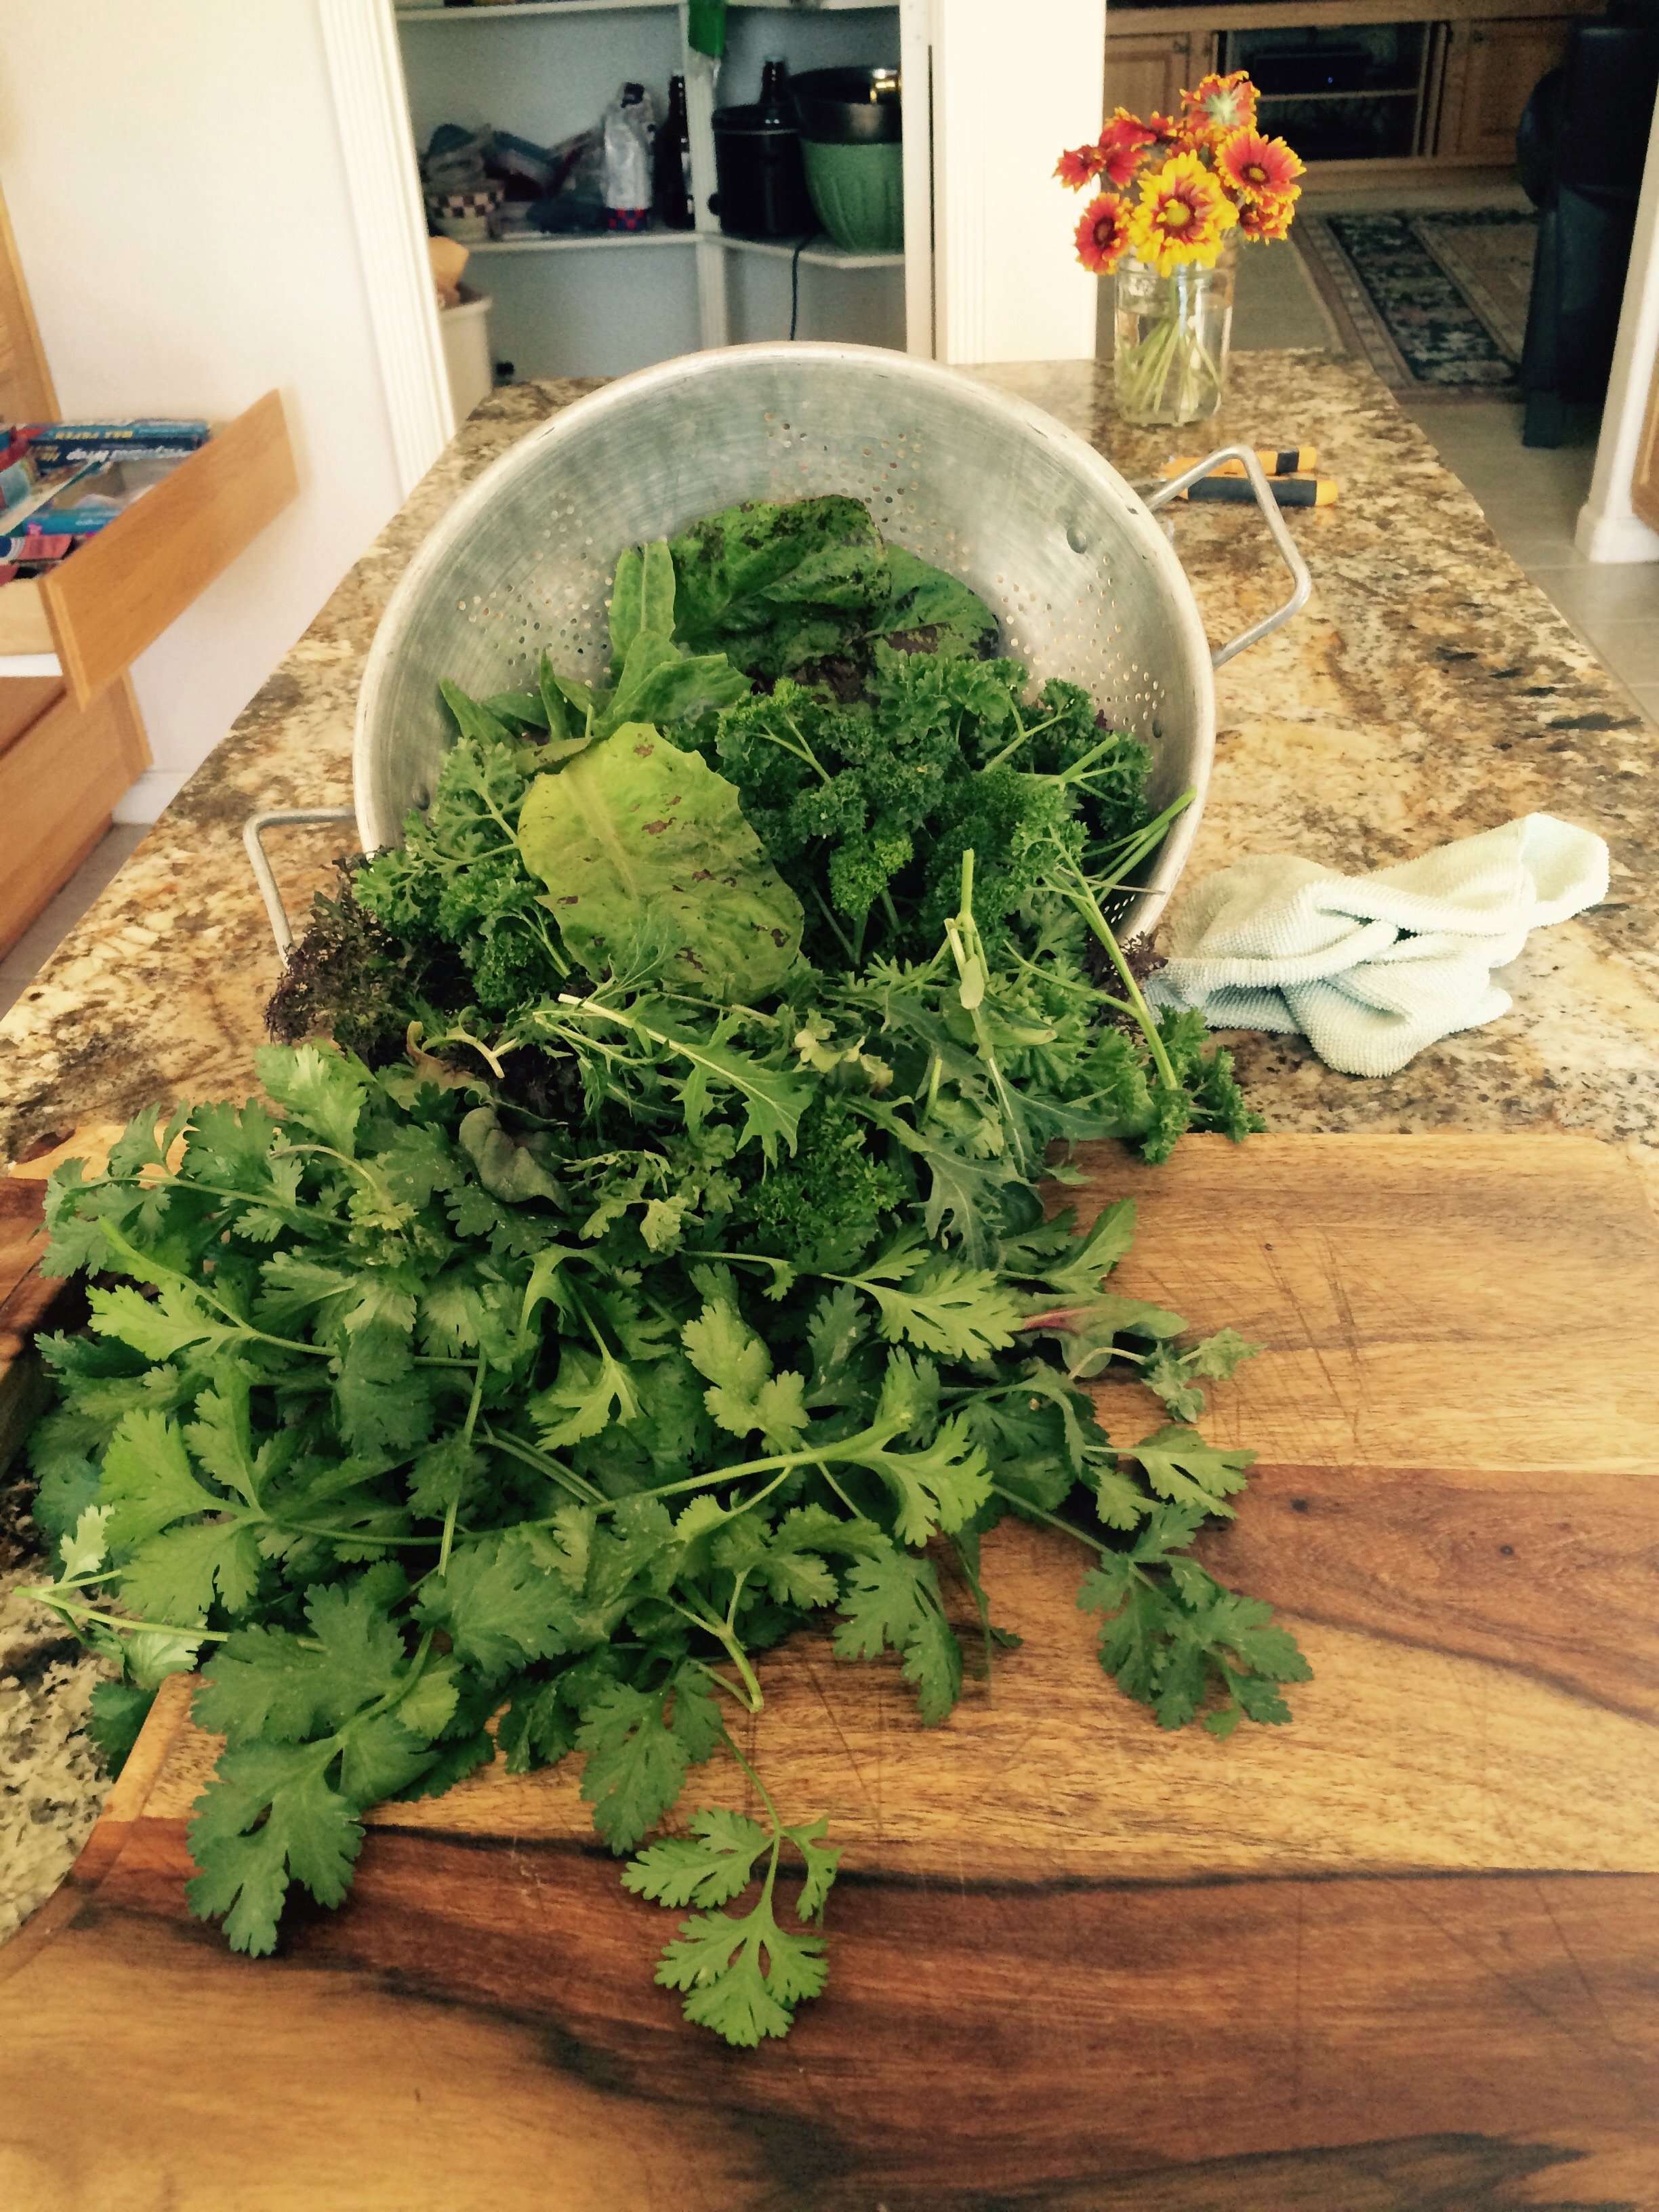 There is no taste better than fresh out of the garden parsley and greens